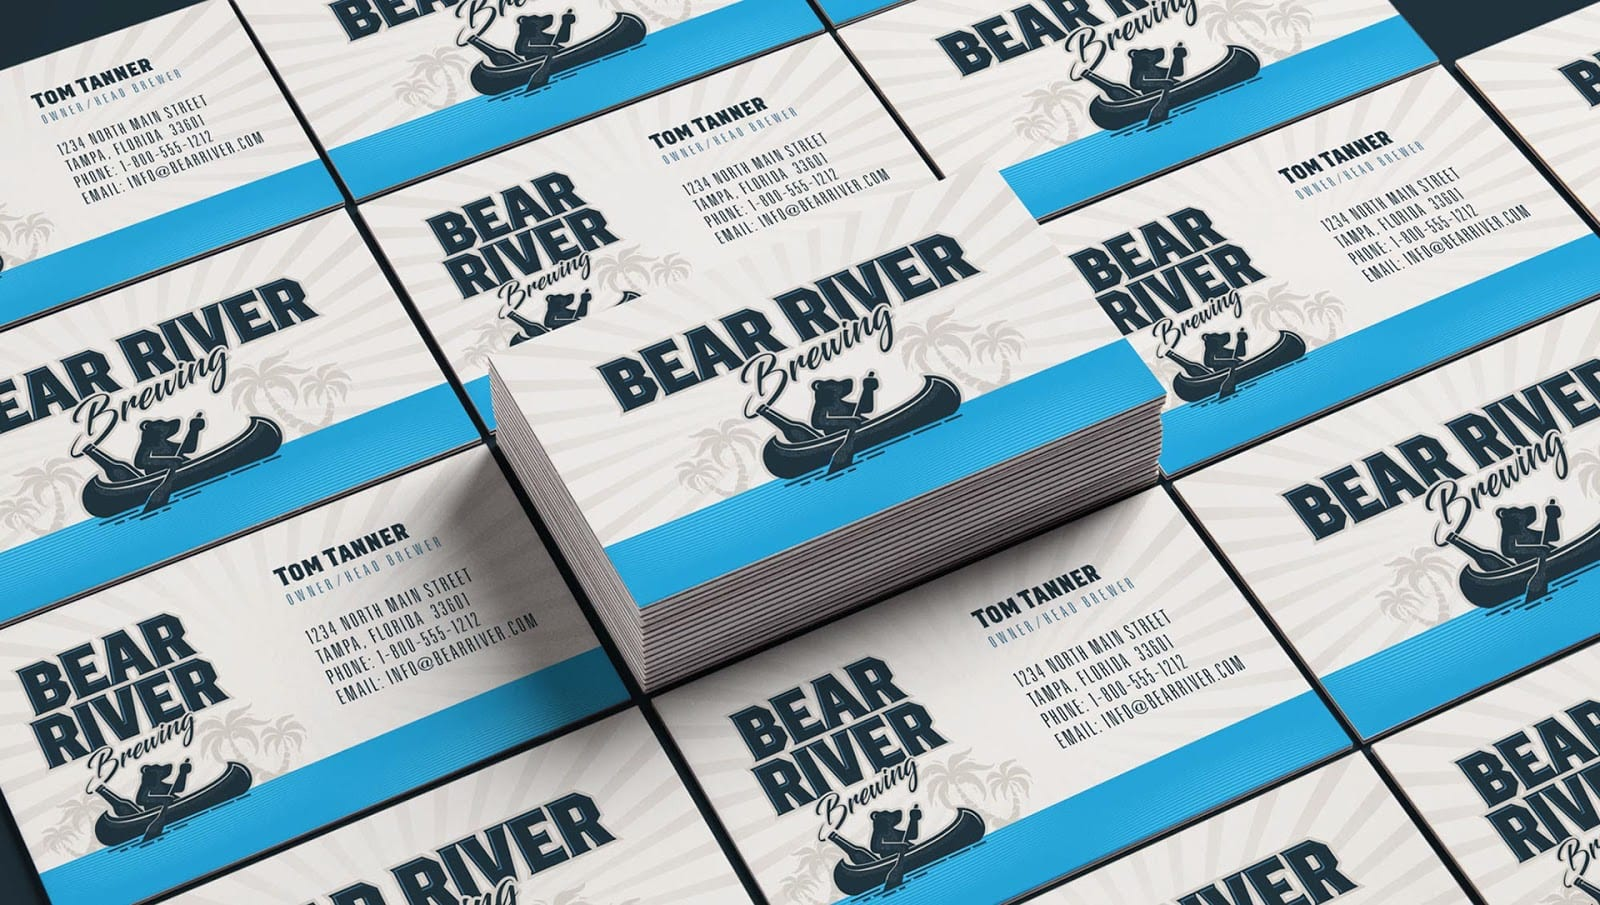 Bear River Brewing Branding 020 - Ach, tie obaly – Bear River Brewing